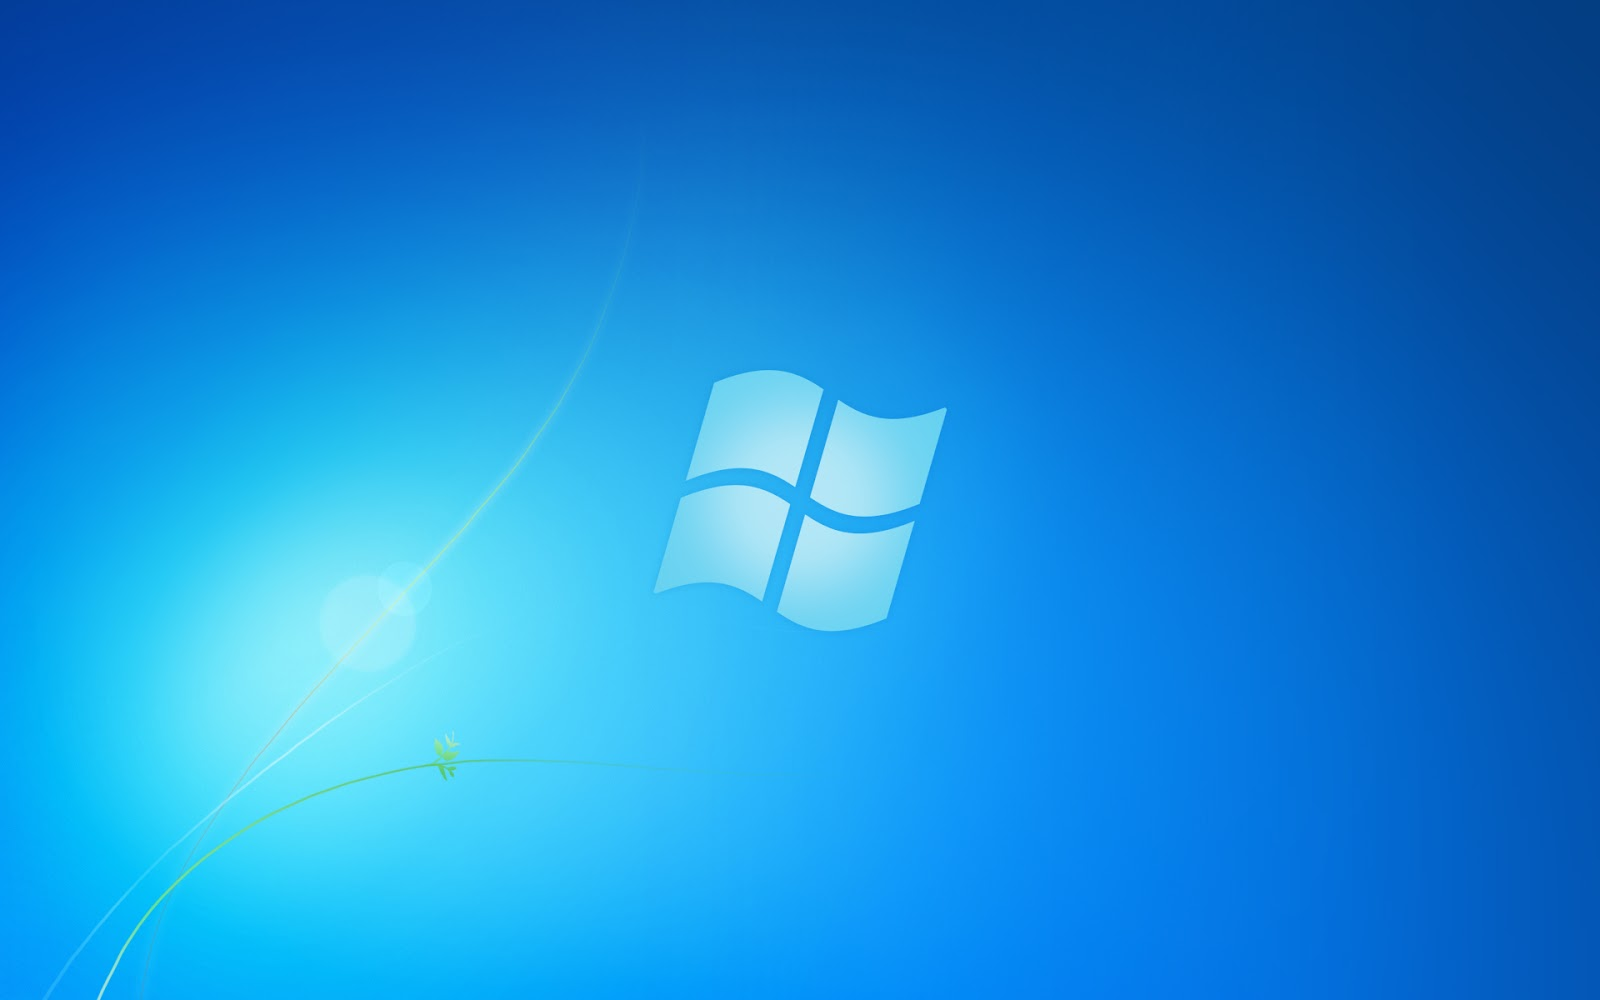 How To Customize Wallpaper in Windows 7 Starter Edition - windows 7 starter edition wallpapers